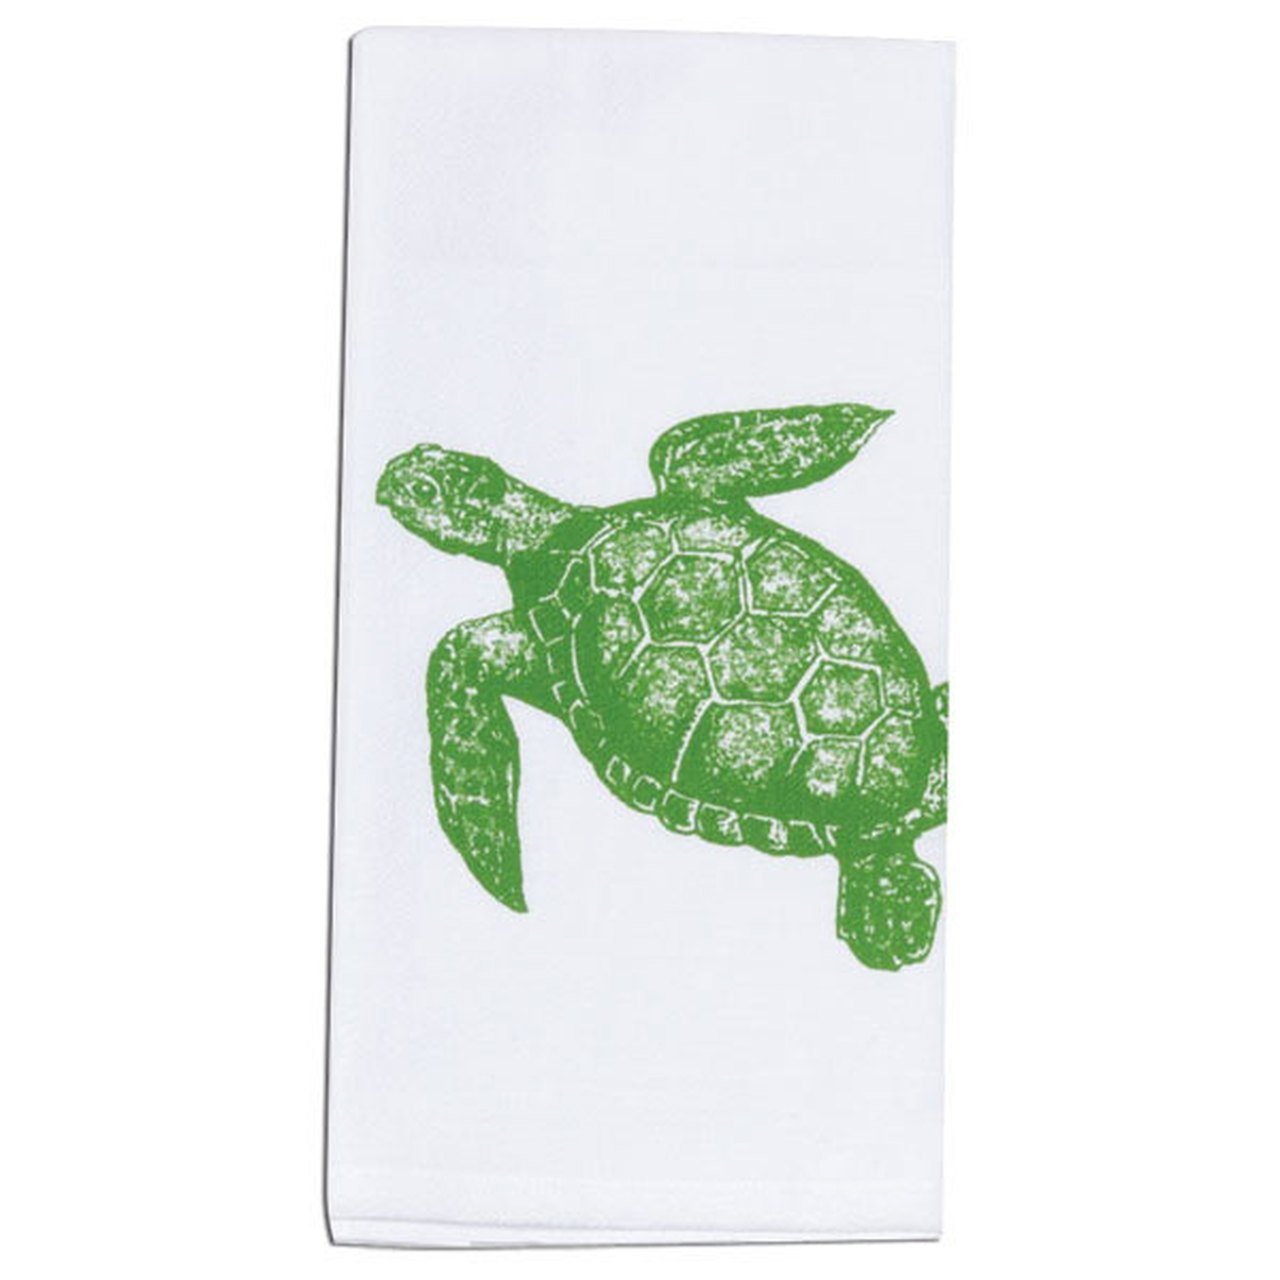 SEA TURTLE KRINKLE FLOUR SACK TOWEL - Molly's! A Chic and Unique Boutique